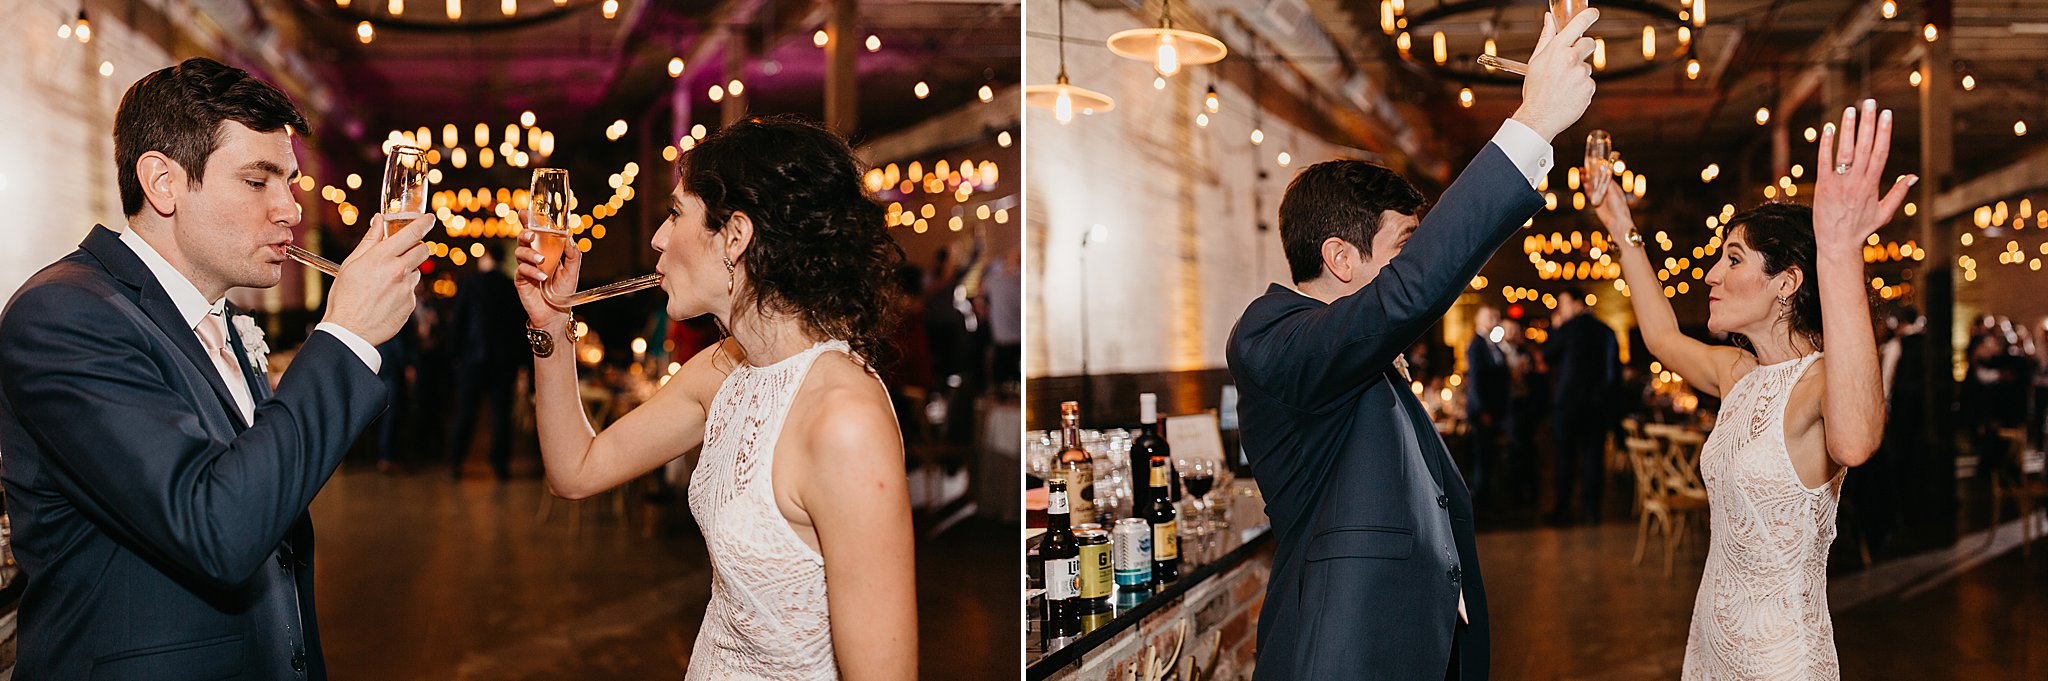 Wilderlove Co_Wedding Photographer_Industrial Wedding_Jewish Wedding_Dallas Texas Wedding_Brake & Clutch Warehouse_North Texas Photographer_0094.jpg